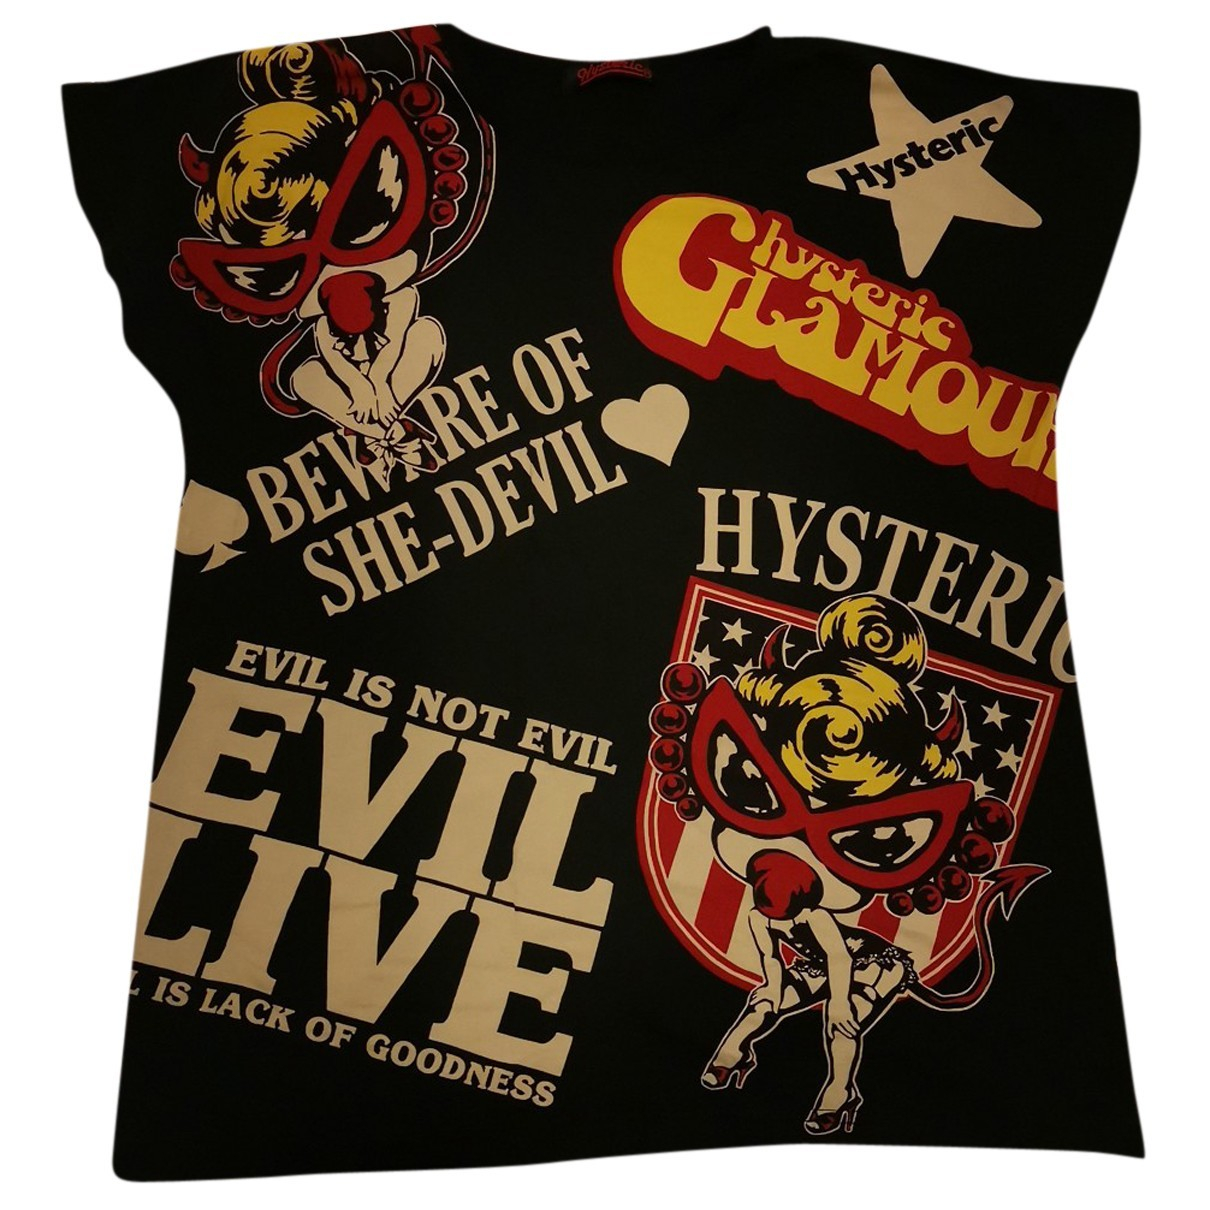 Hysteric Galmour N Black Cotton  top for Women One Size International